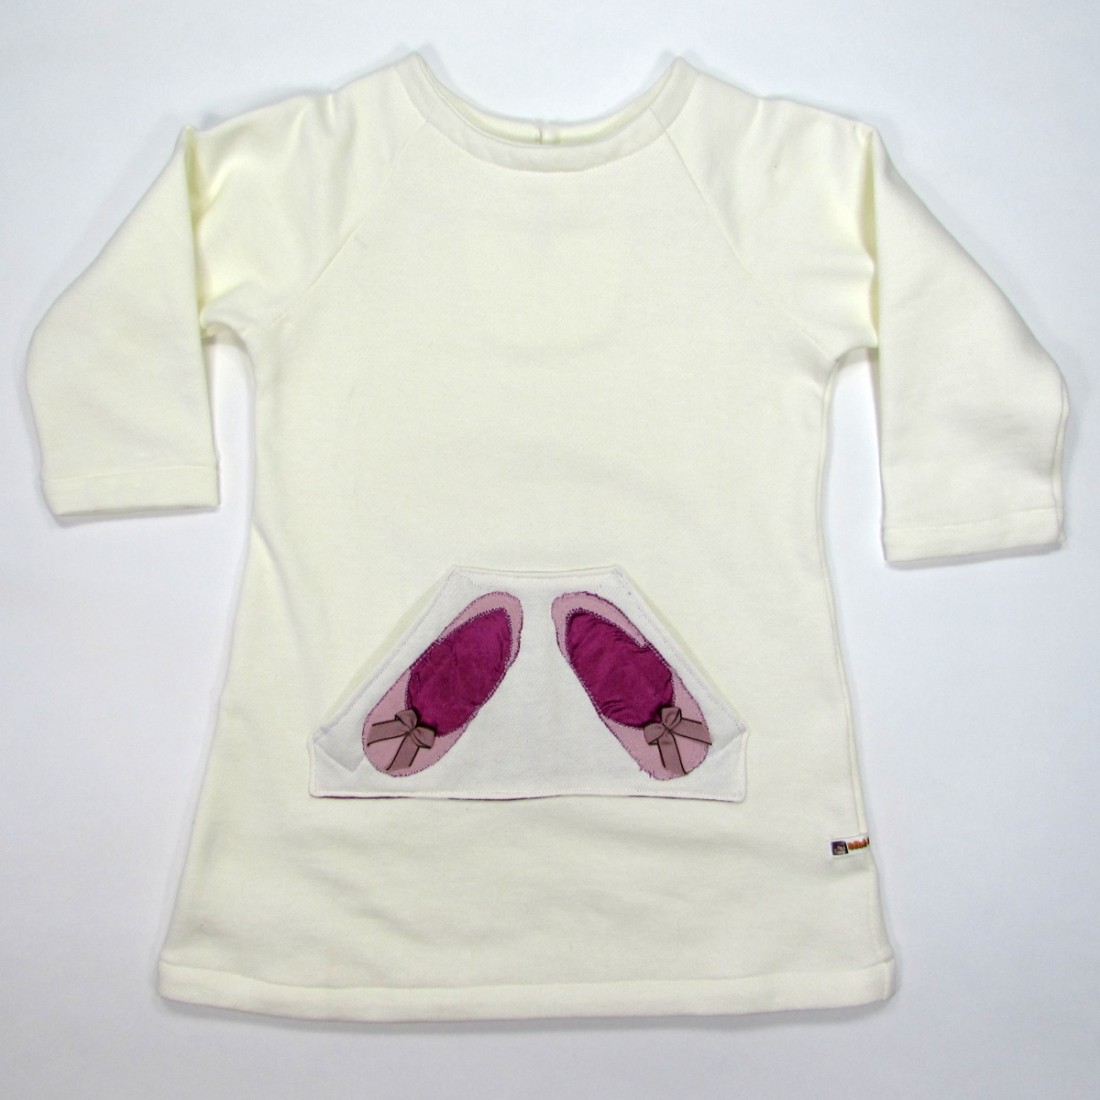 Robe pull en sweat shirt fillette 2 ans avec ballerines sur la poche